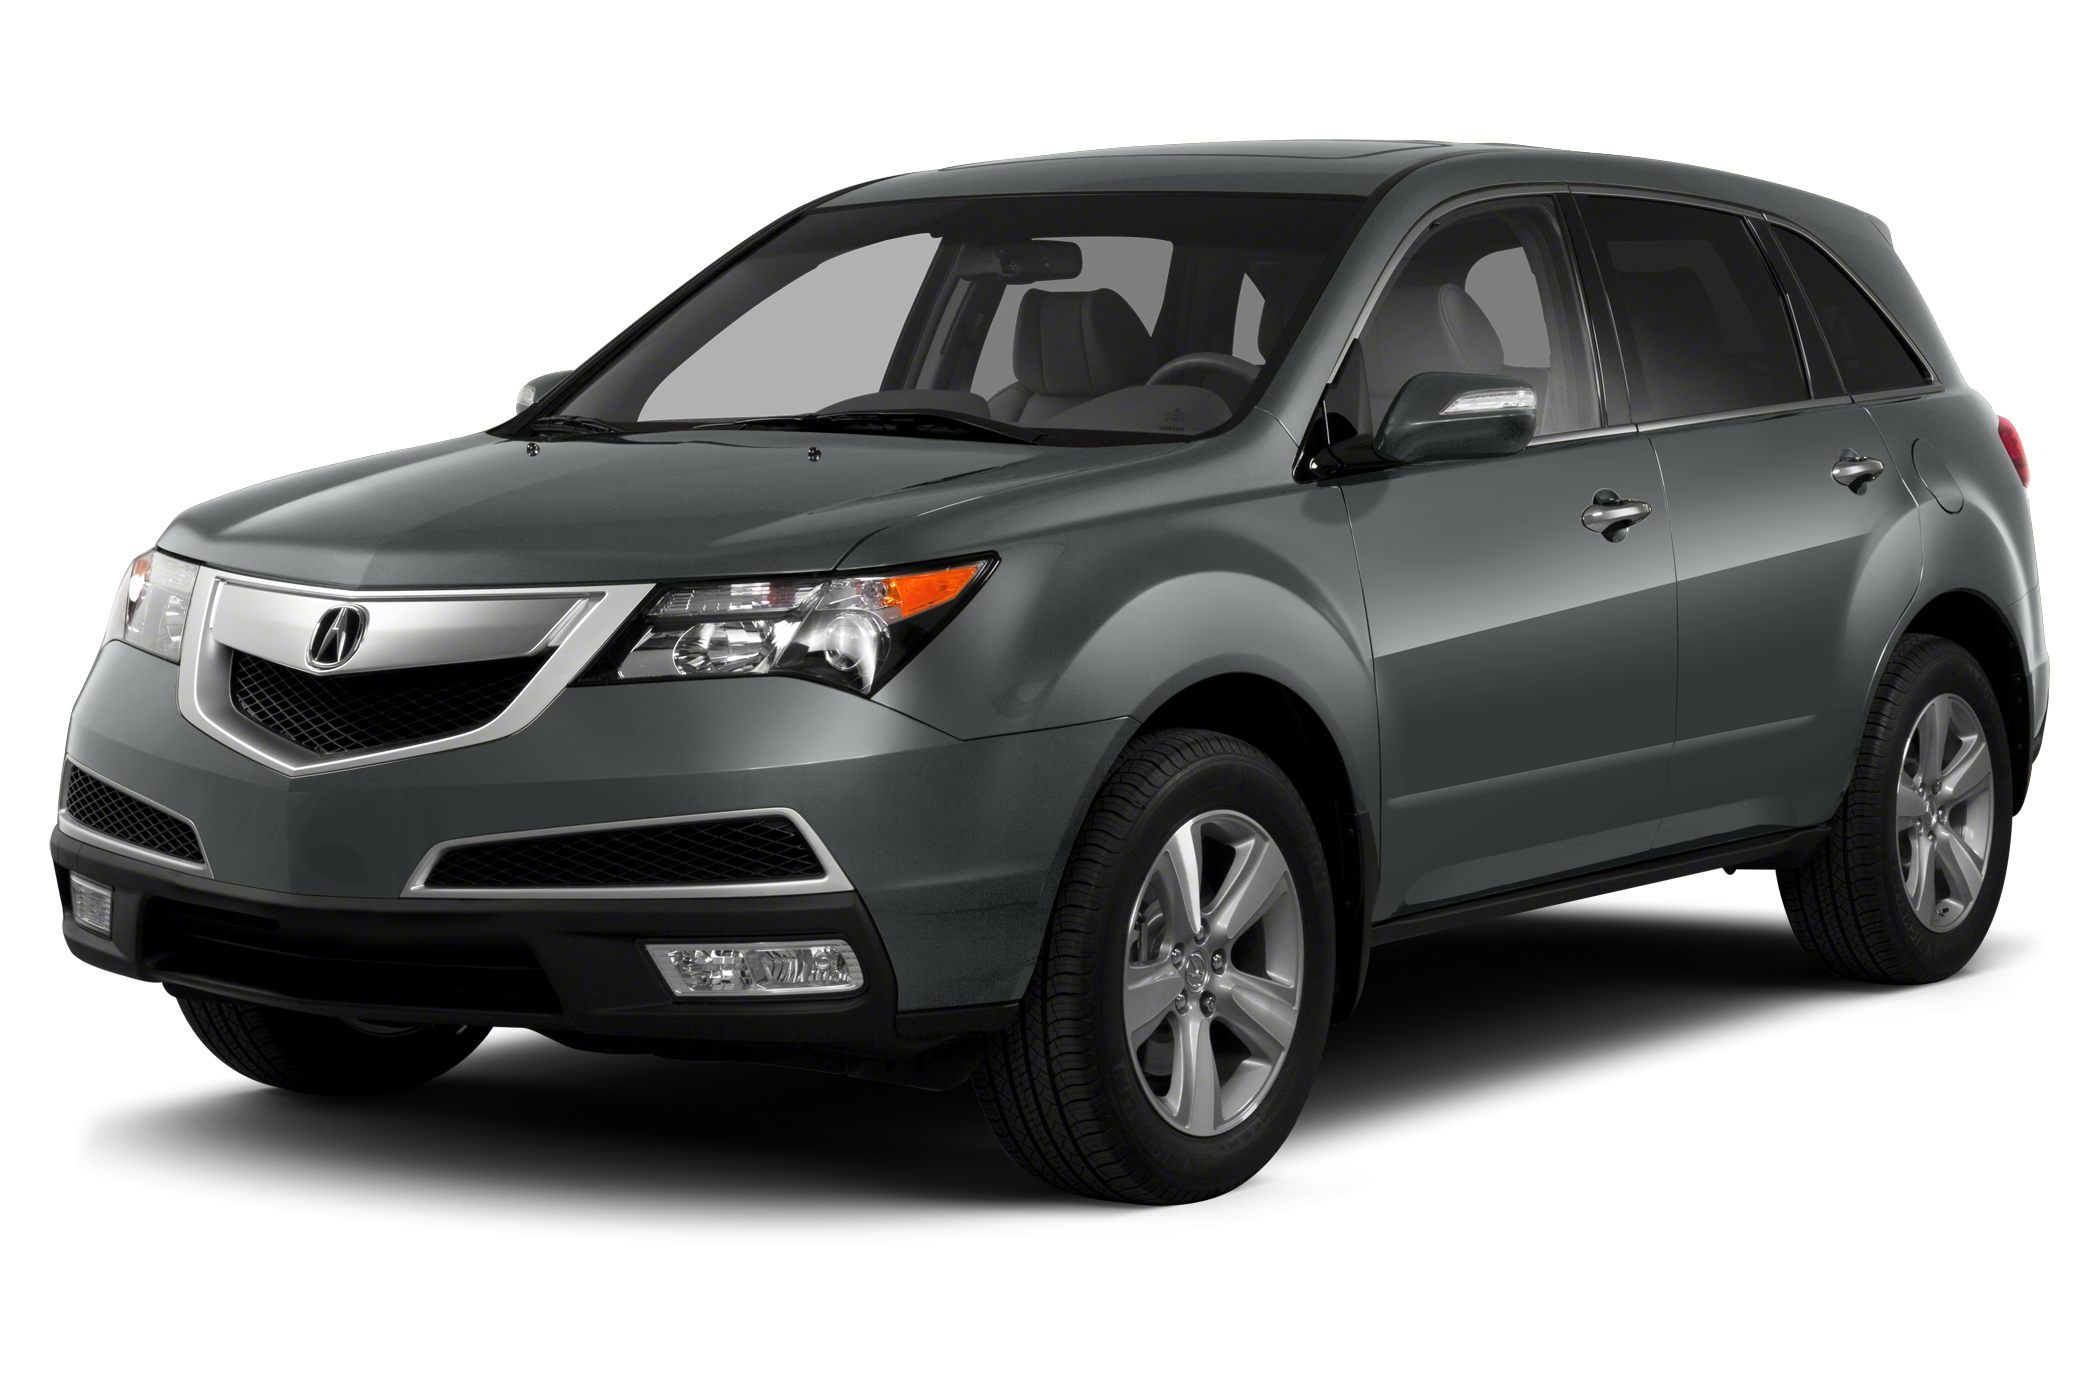 2013 Acura MDX 3.7L Technology SUV for sale in Front Royal for $33,808 with 38,264 miles.